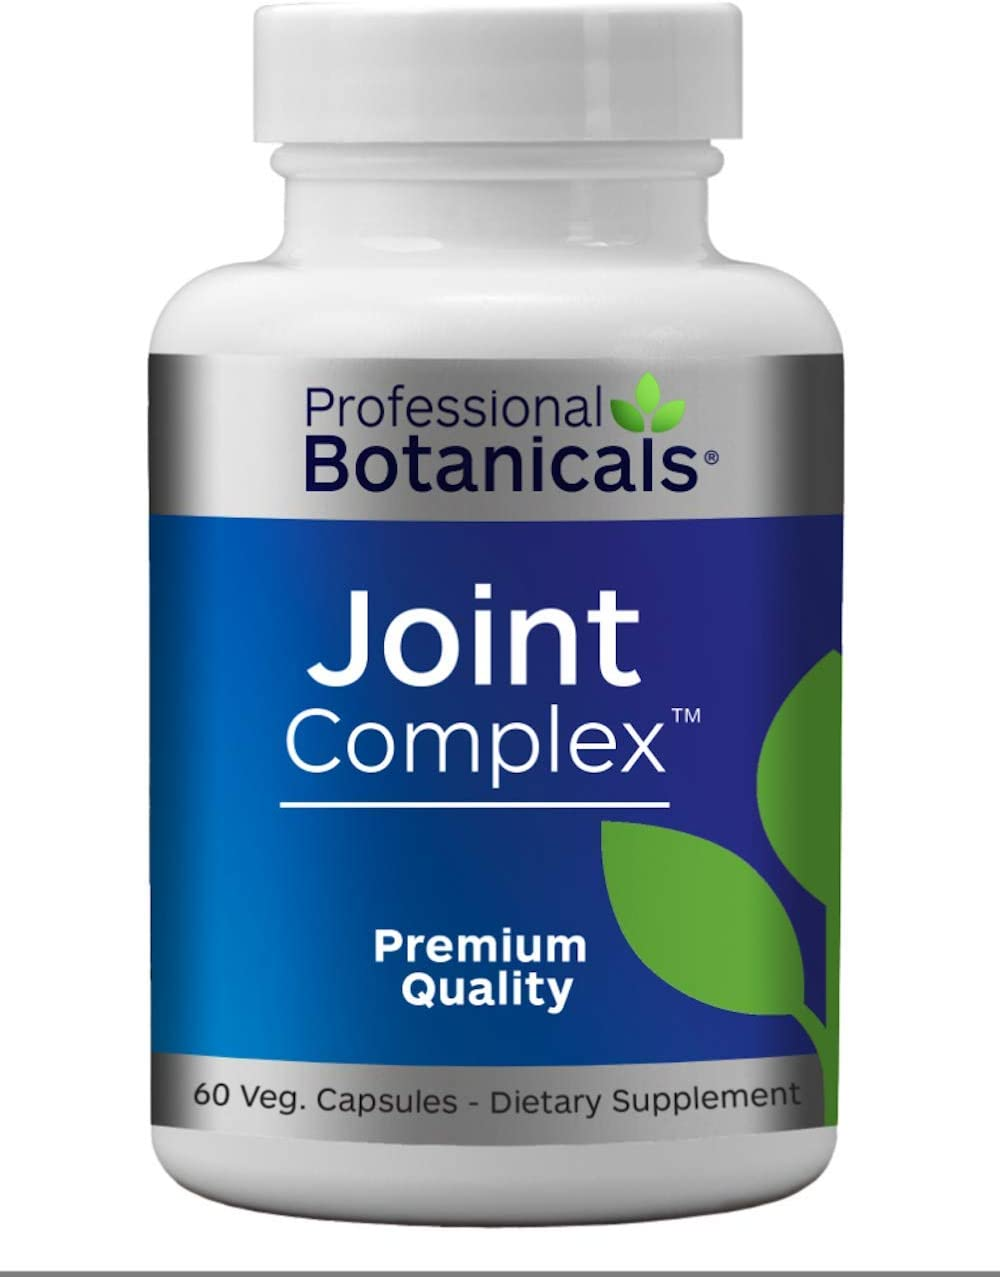 Professional Botanicals Ligatone - Vegan Joint Health Supplement Supports Healthy Joints, Tendons, Elasticity and Cartilage - Chondroitin, Mineral and Enzyme Complex - 60 vegetarian Capsules